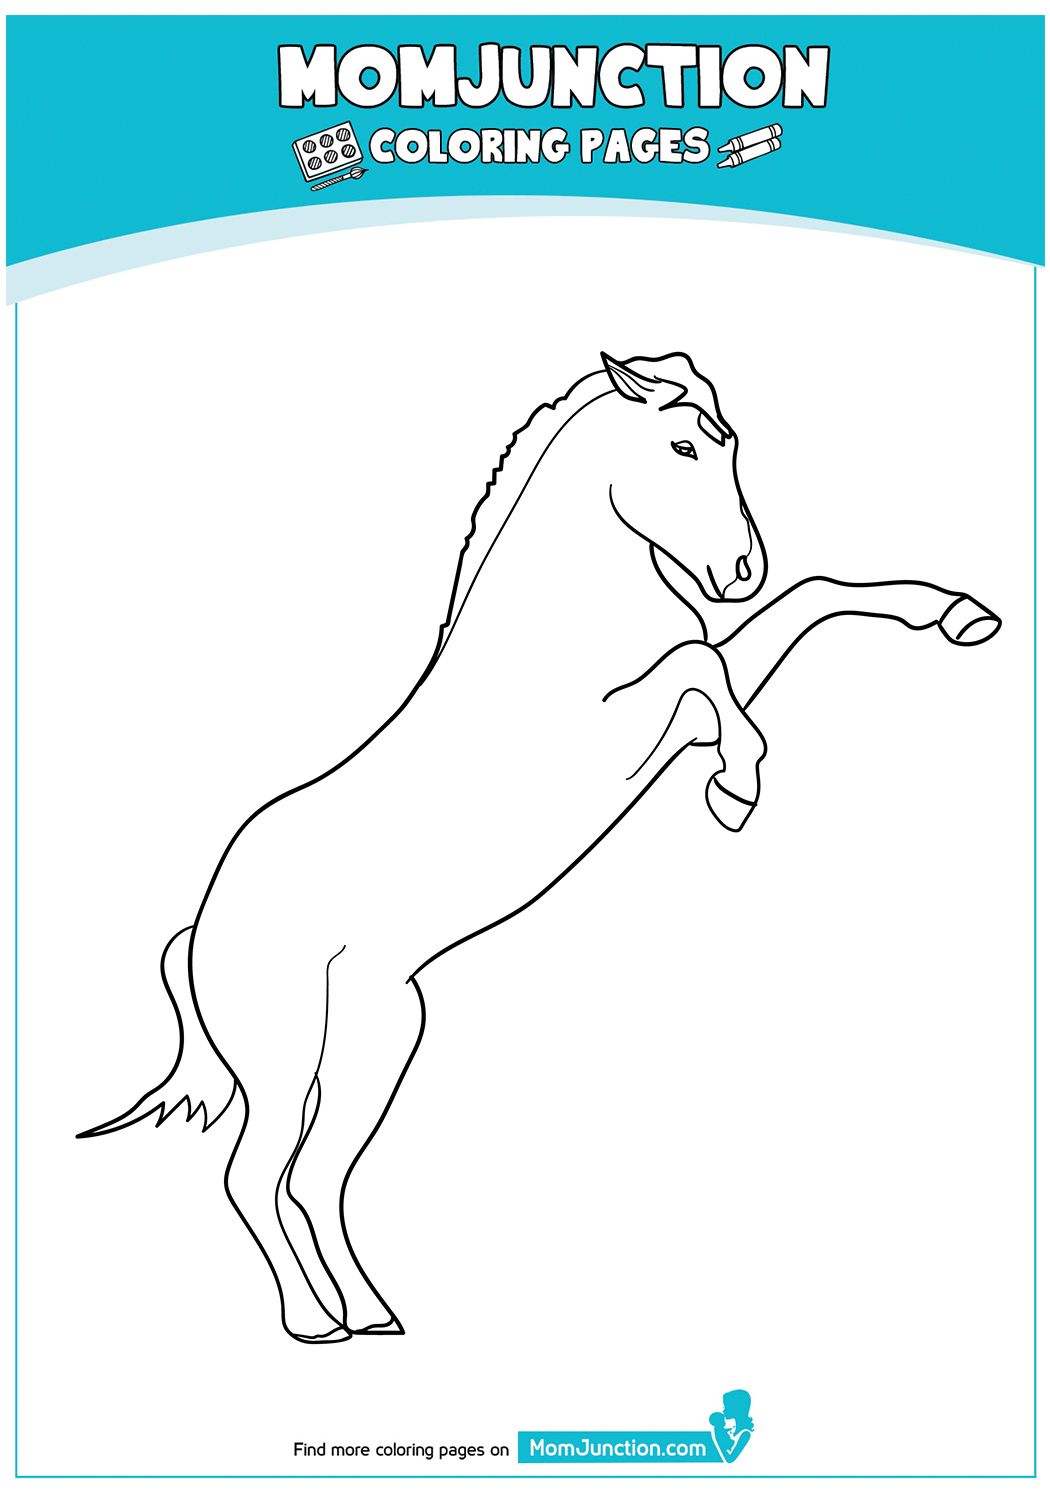 Rearing Arabian Horse 17 Horse Coloring Pages Coloring Pages Horse Coloring [ 1500 x 1050 Pixel ]